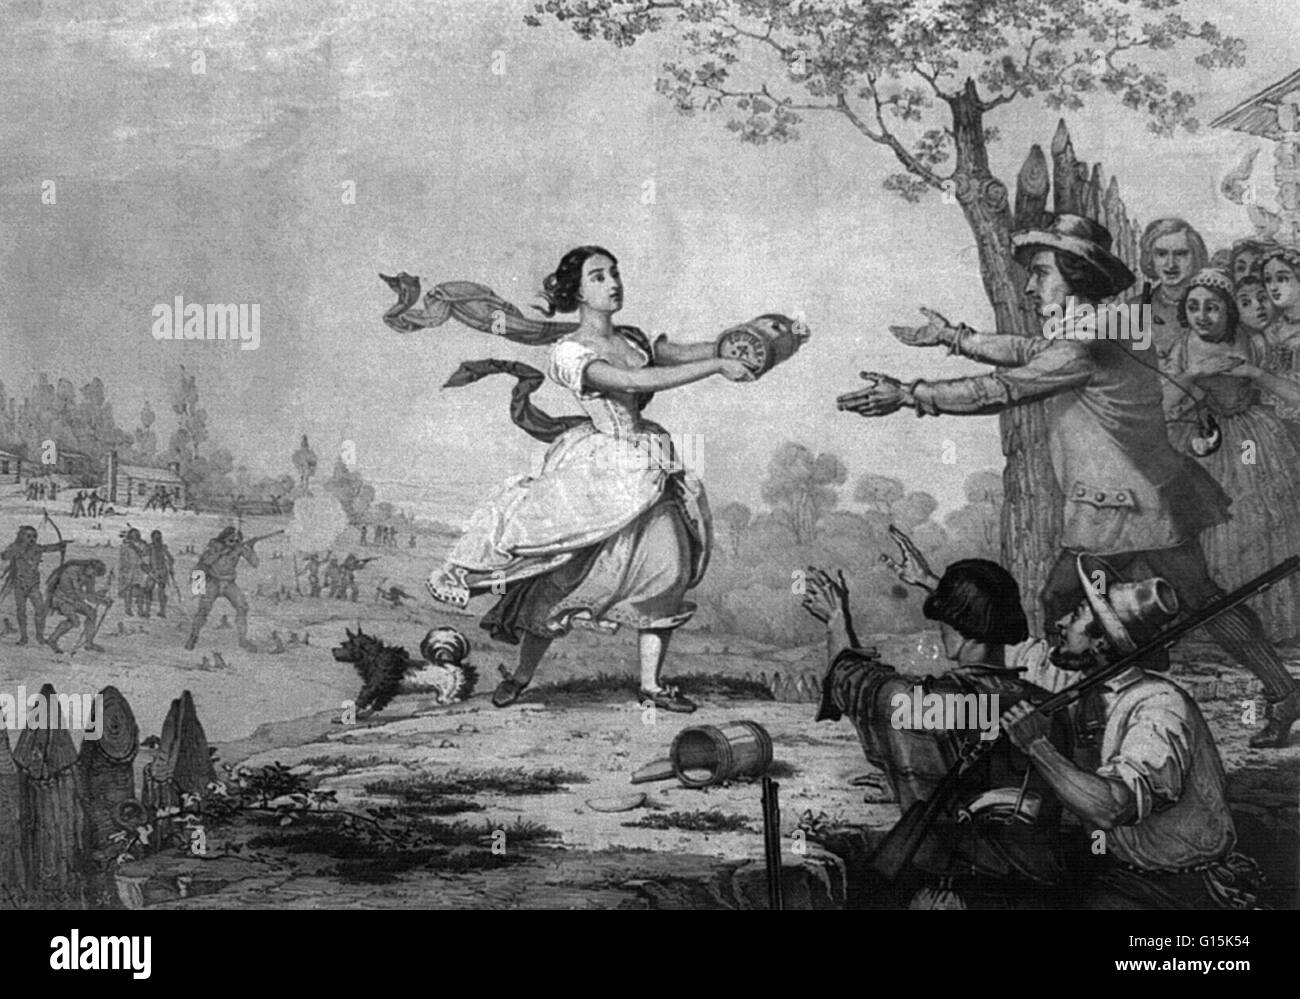 Elizabeth 'Betty' Zane McLaughlin Clark (1759-1823) was a heroine of the Revolutionary War. Under attack - Stock Image